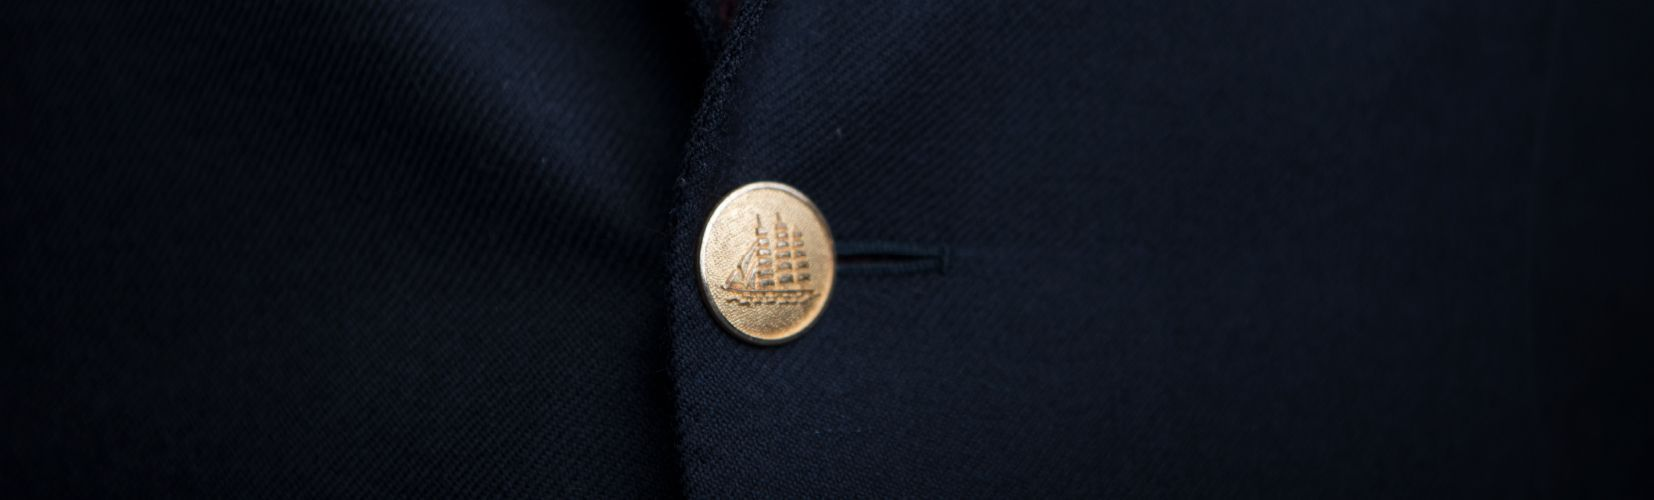 Huntsman Tailoring Shop Heading Image - Gold Button on One Button Suit